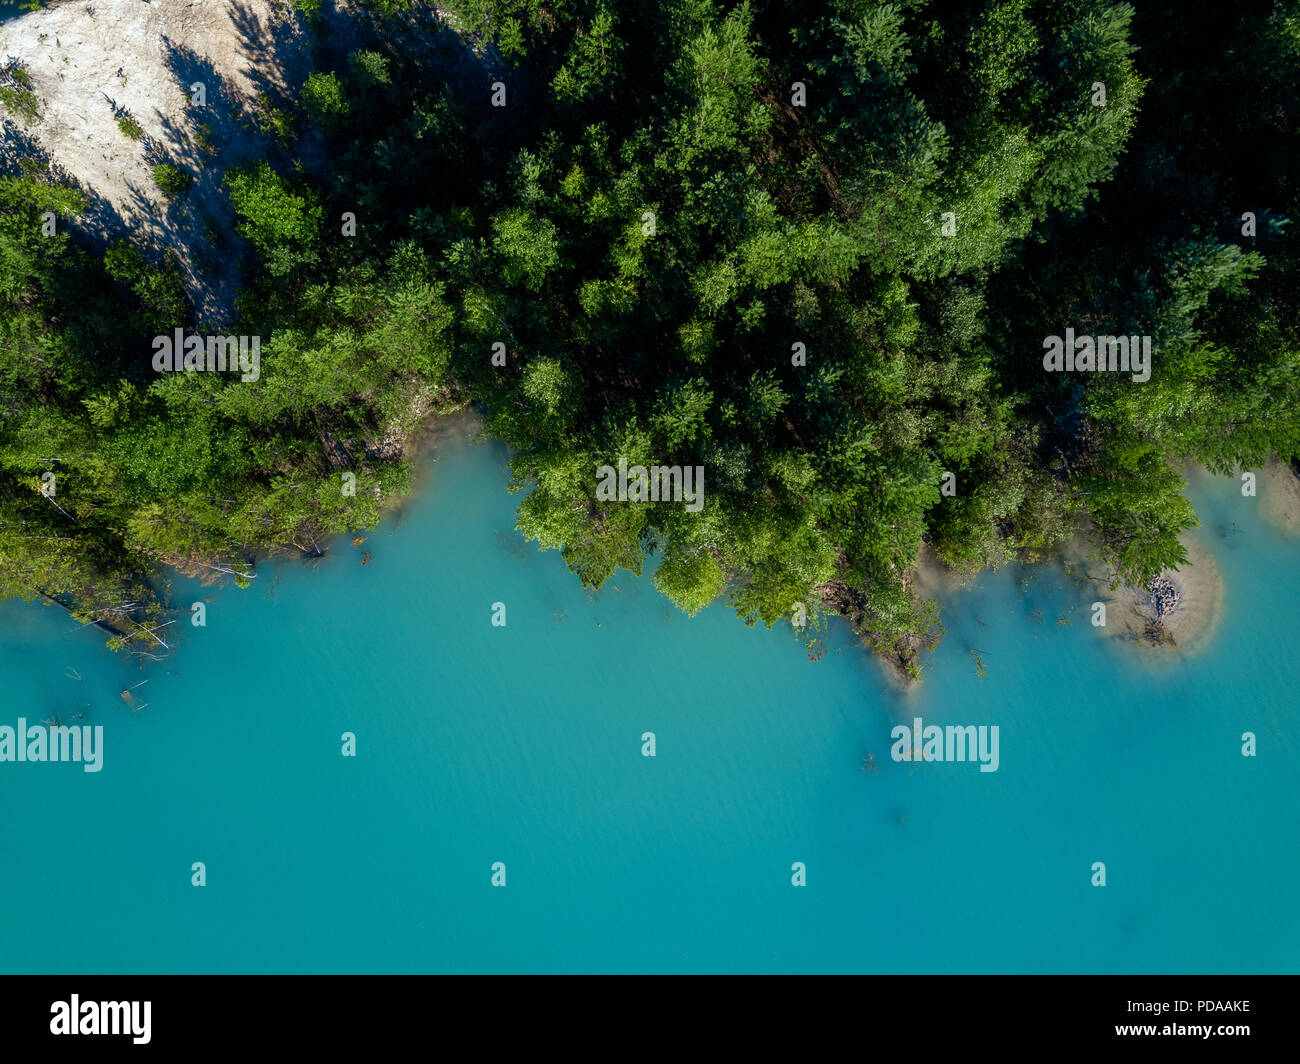 Aerial drone photo of green tree crones growing in tourquoise water of abandoned kaolin quarry, top down view, Russia - Stock Image